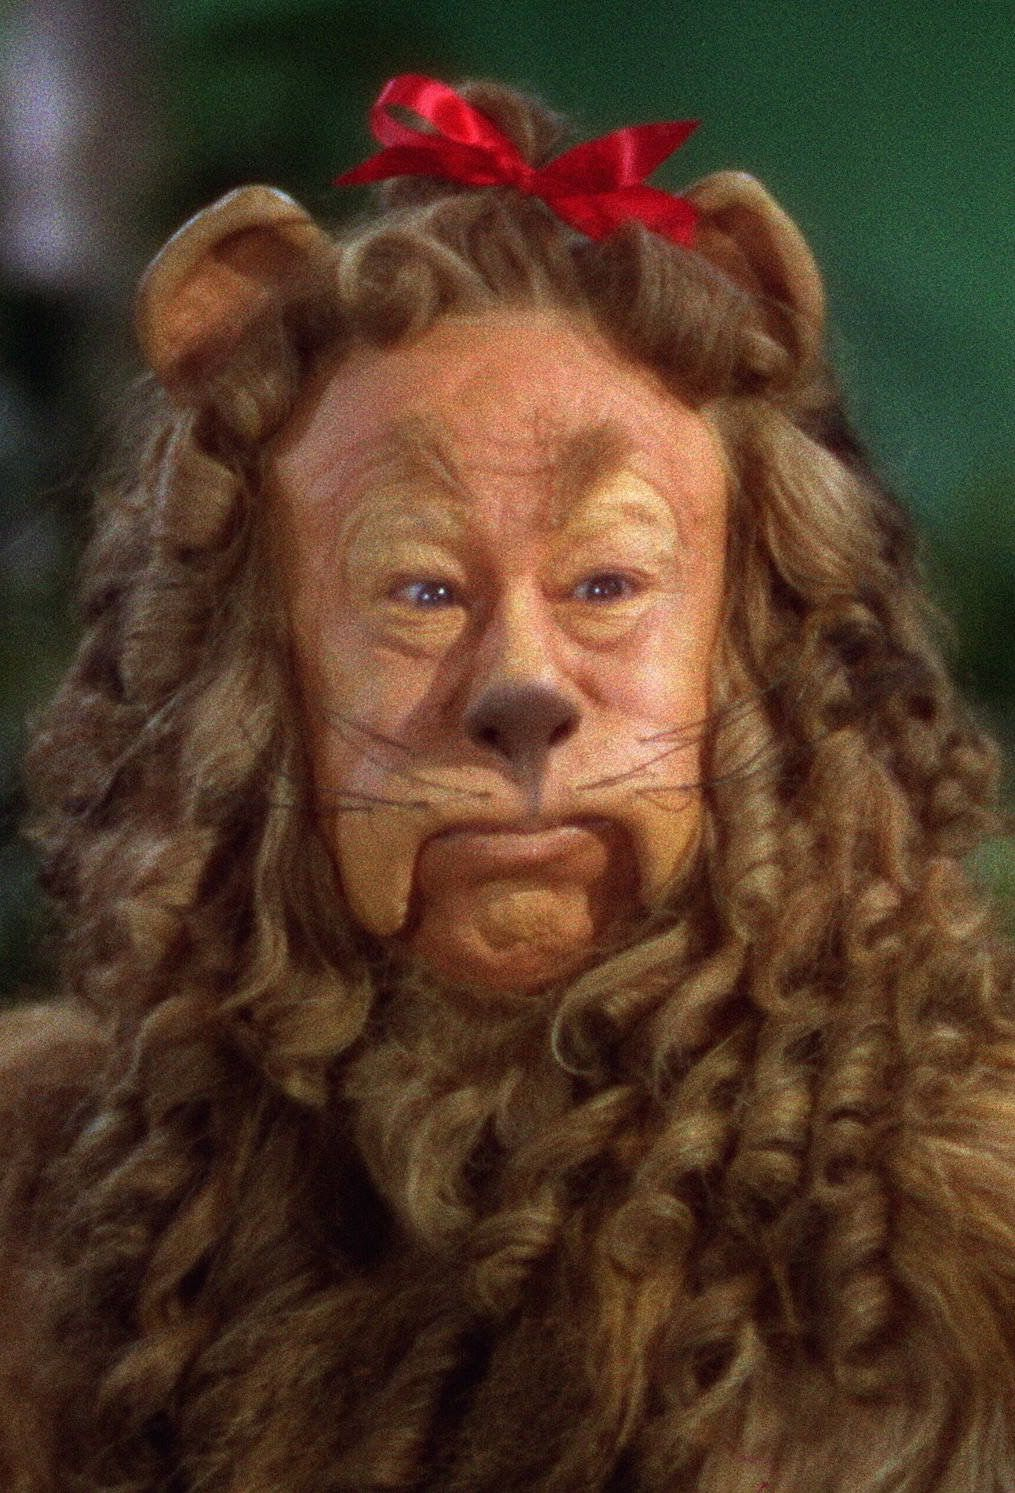 The Cowardly Lion | Wizard of Oz | Pinterest | Cowardly lion